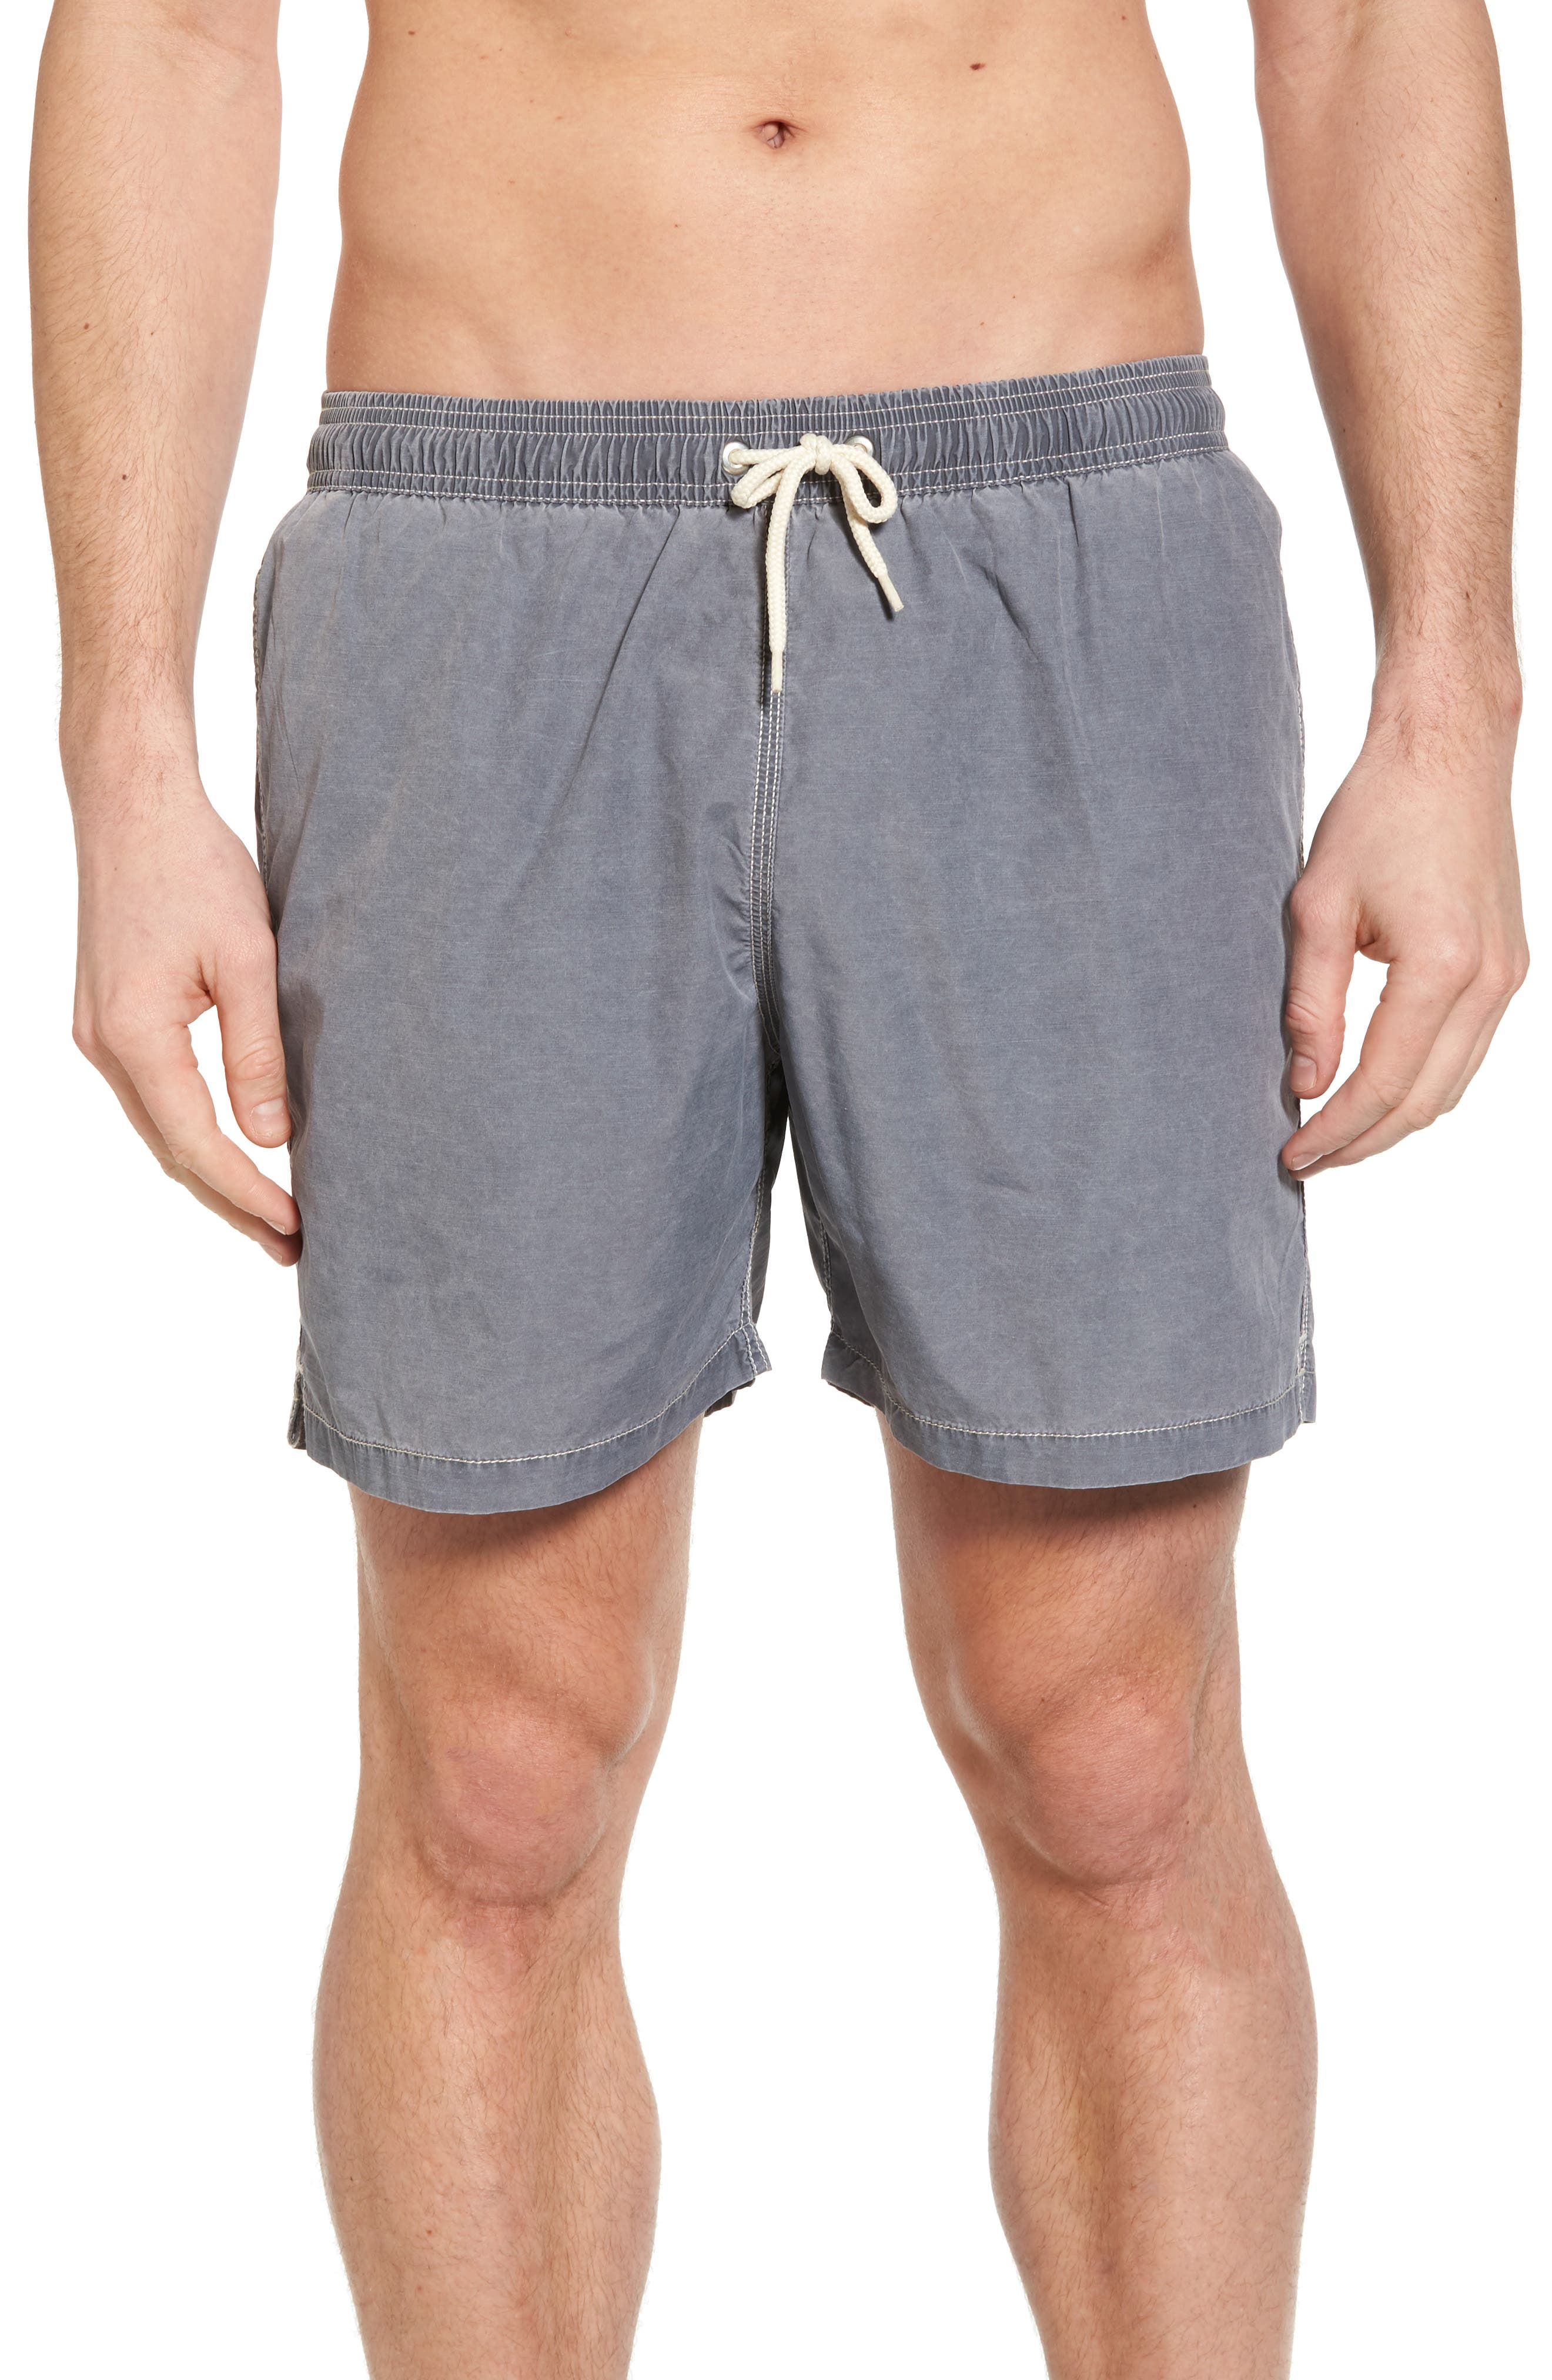 Victor Swim Trunks,                         Main,                         color, 021